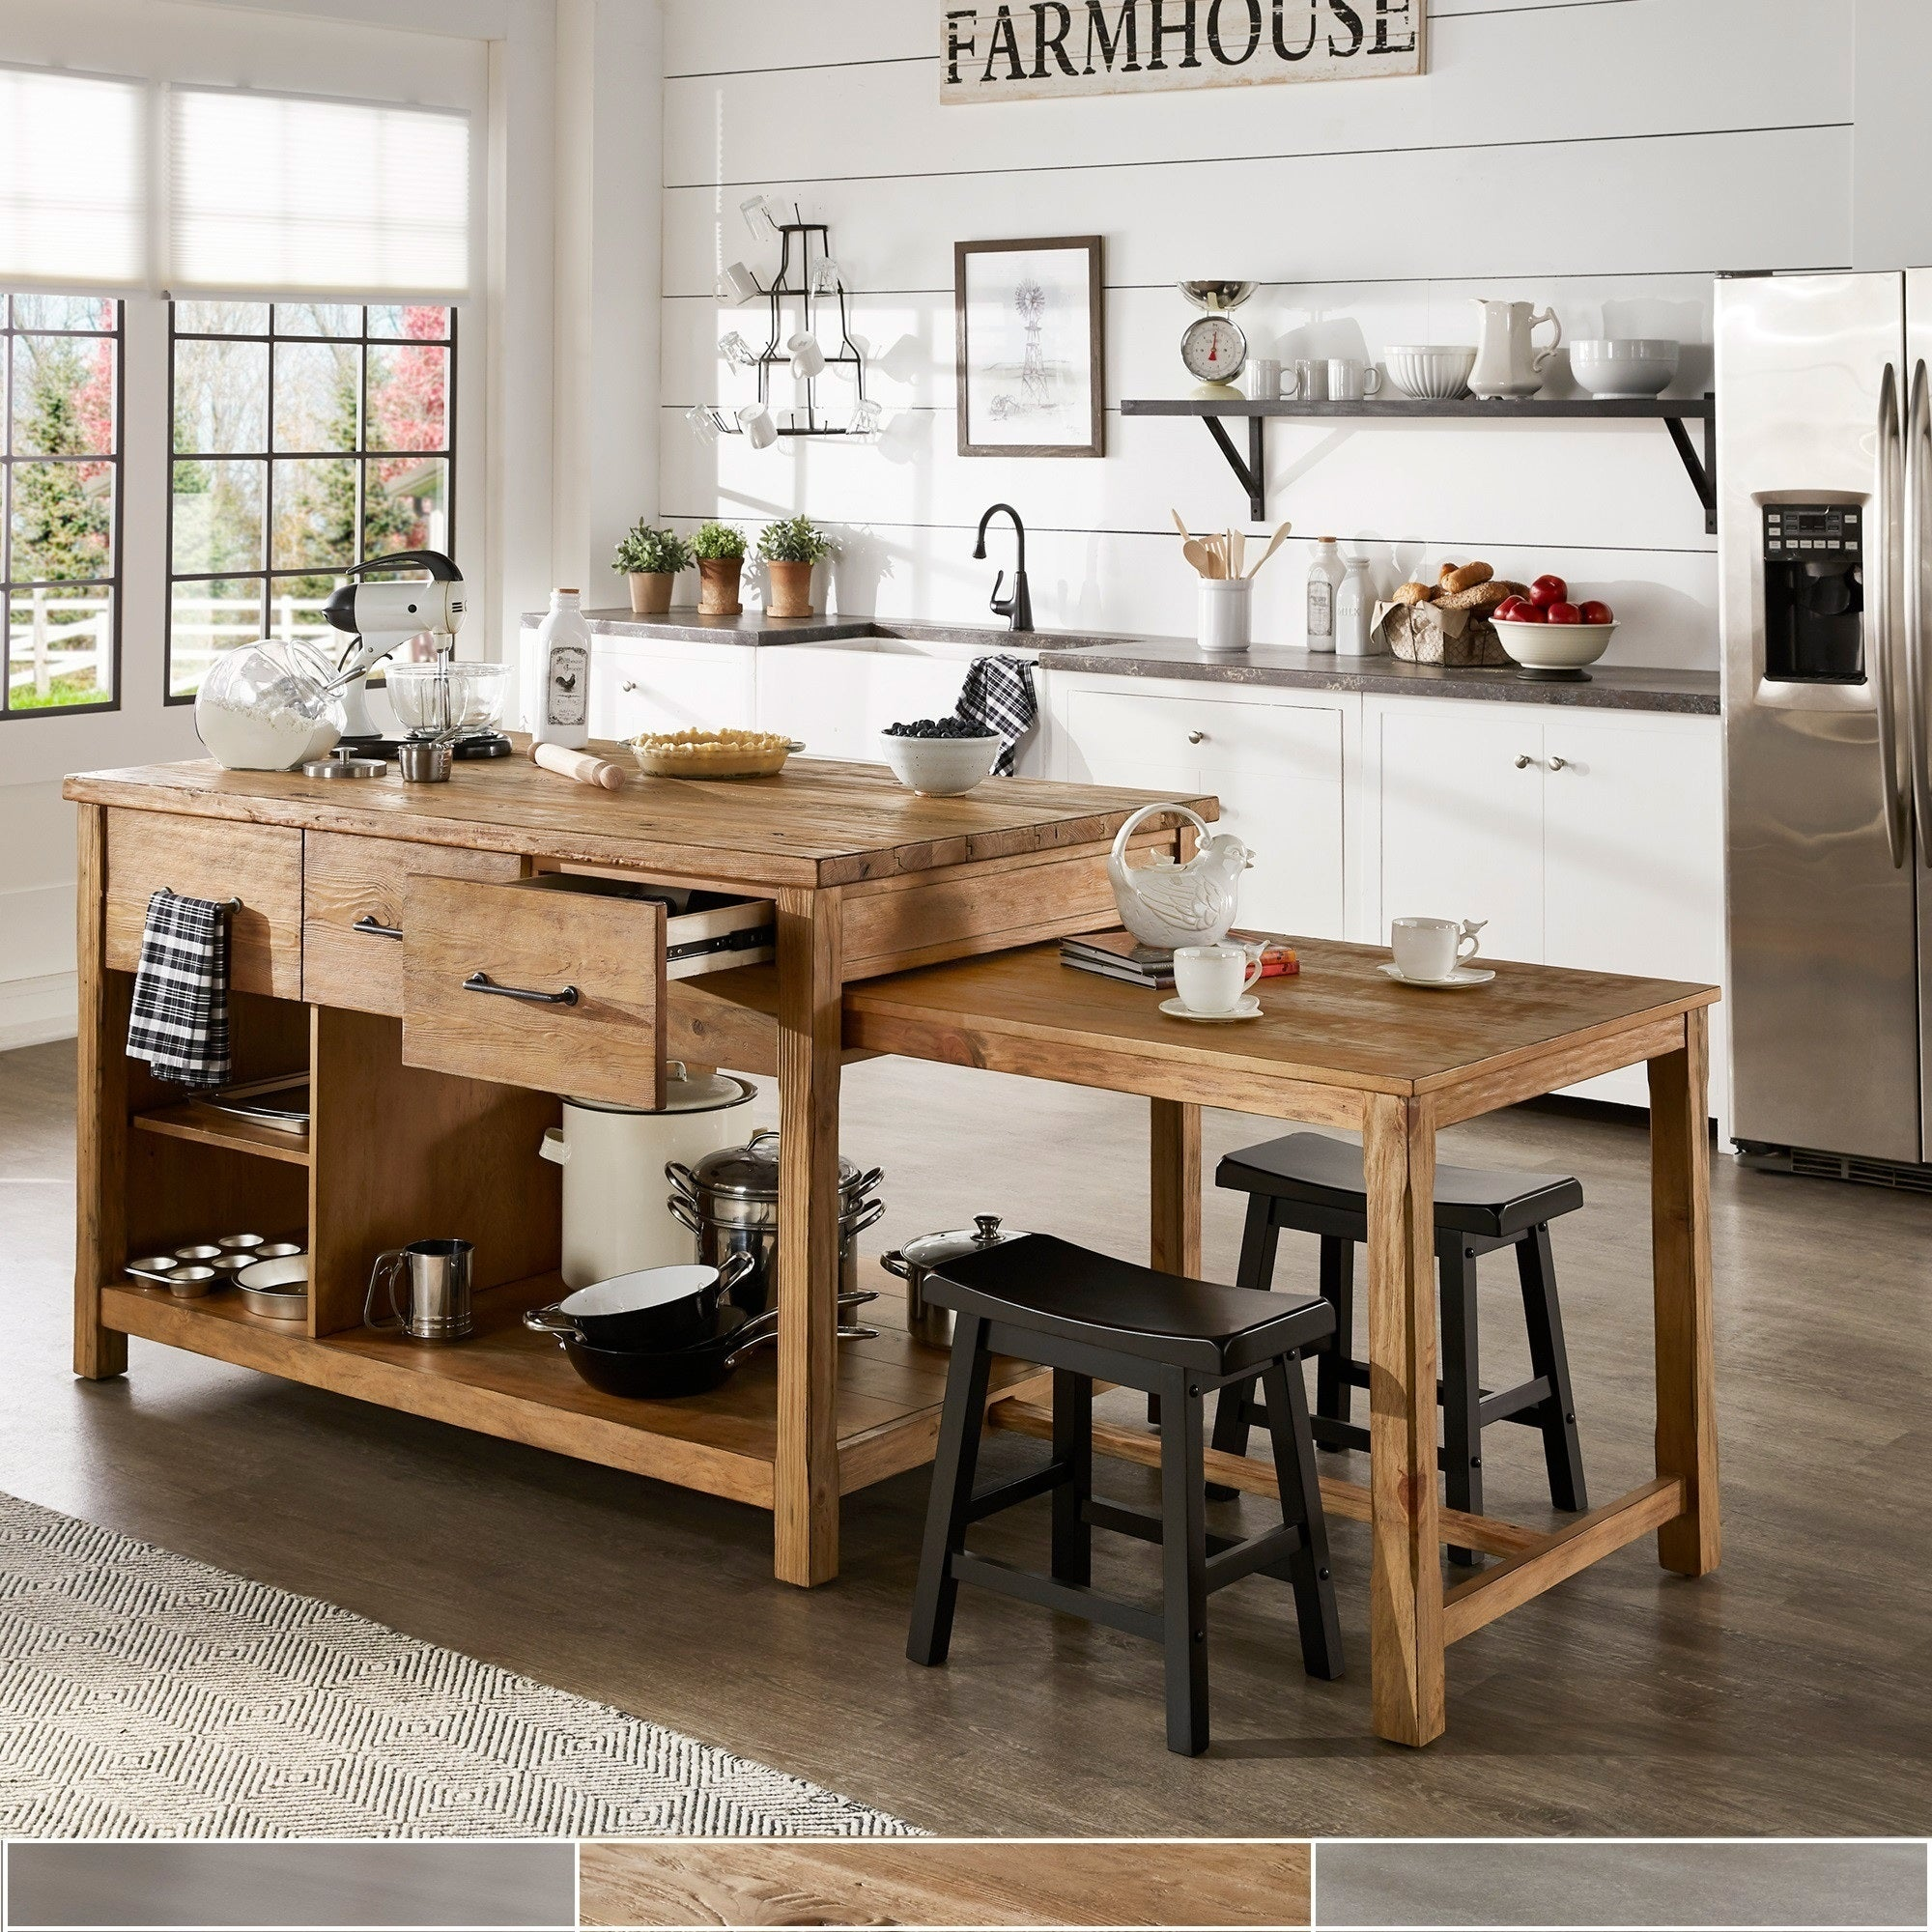 Buy Kitchen Islands Online at Overstock | Our Best Kitchen ...